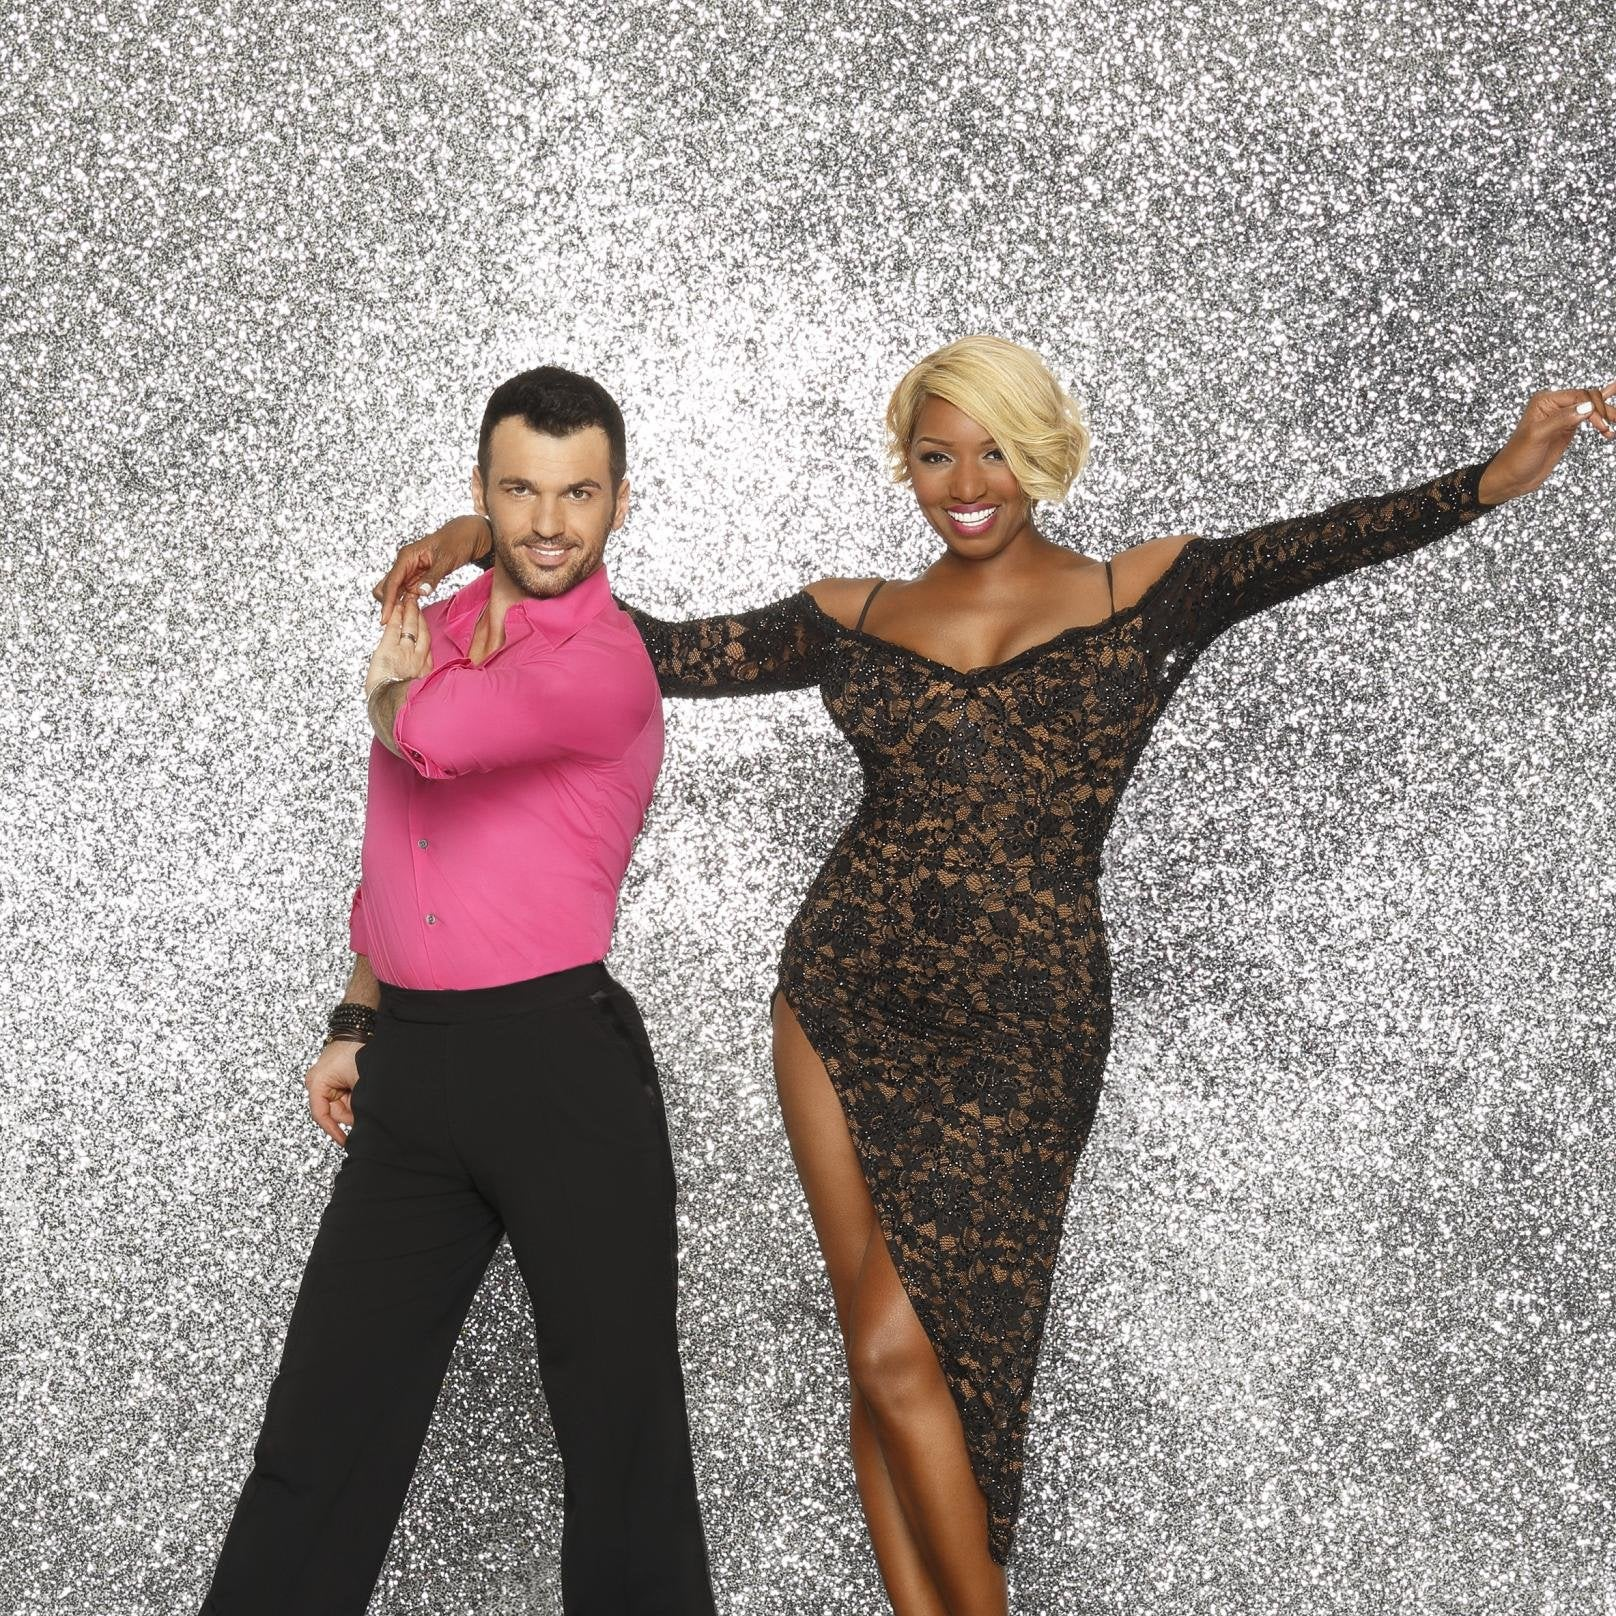 Photo Fab: Nene Leakes Sparkles in Official 'Dancing with the Stars' Portrait